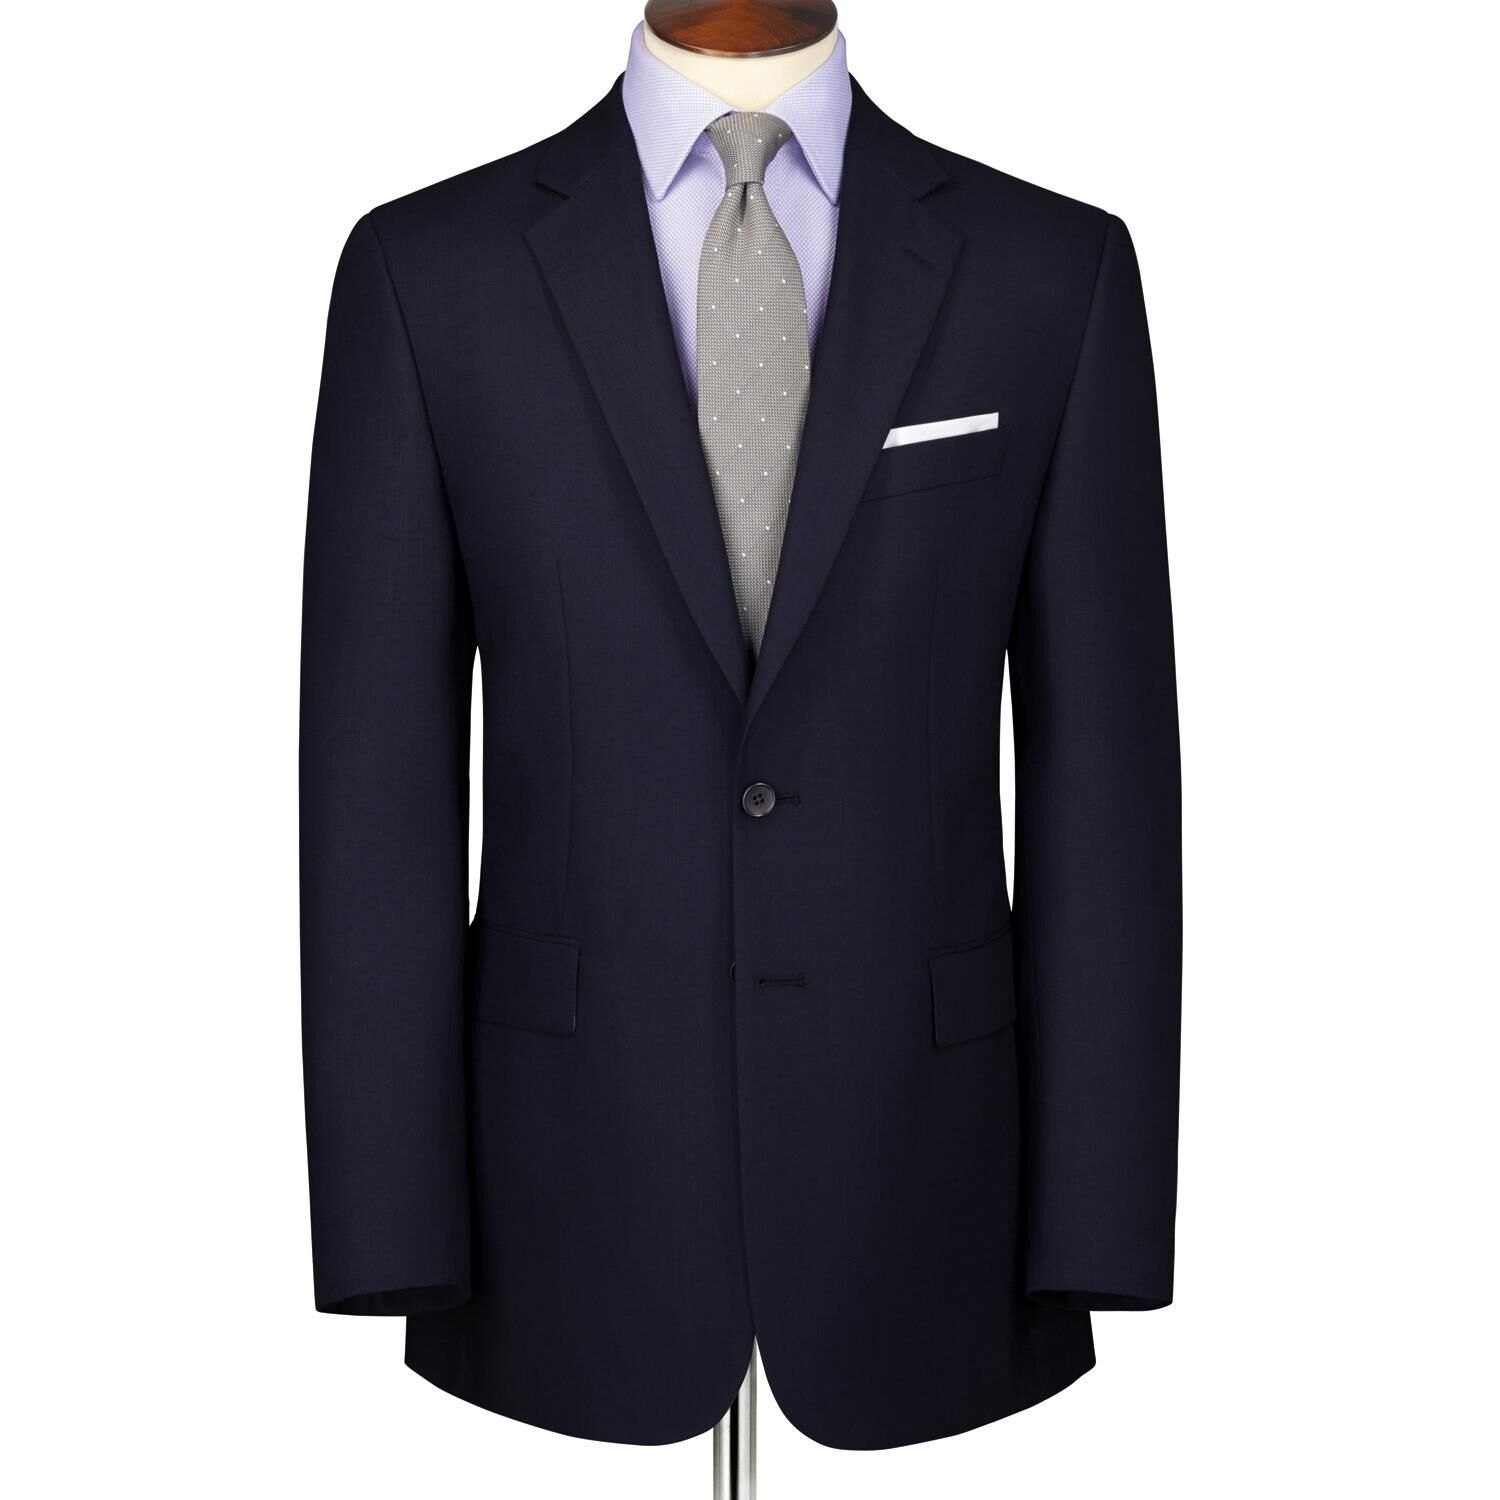 Navy Classic Fit Herringbone Suit Wool Jacket Size 38 by Charles Tyrwhitt